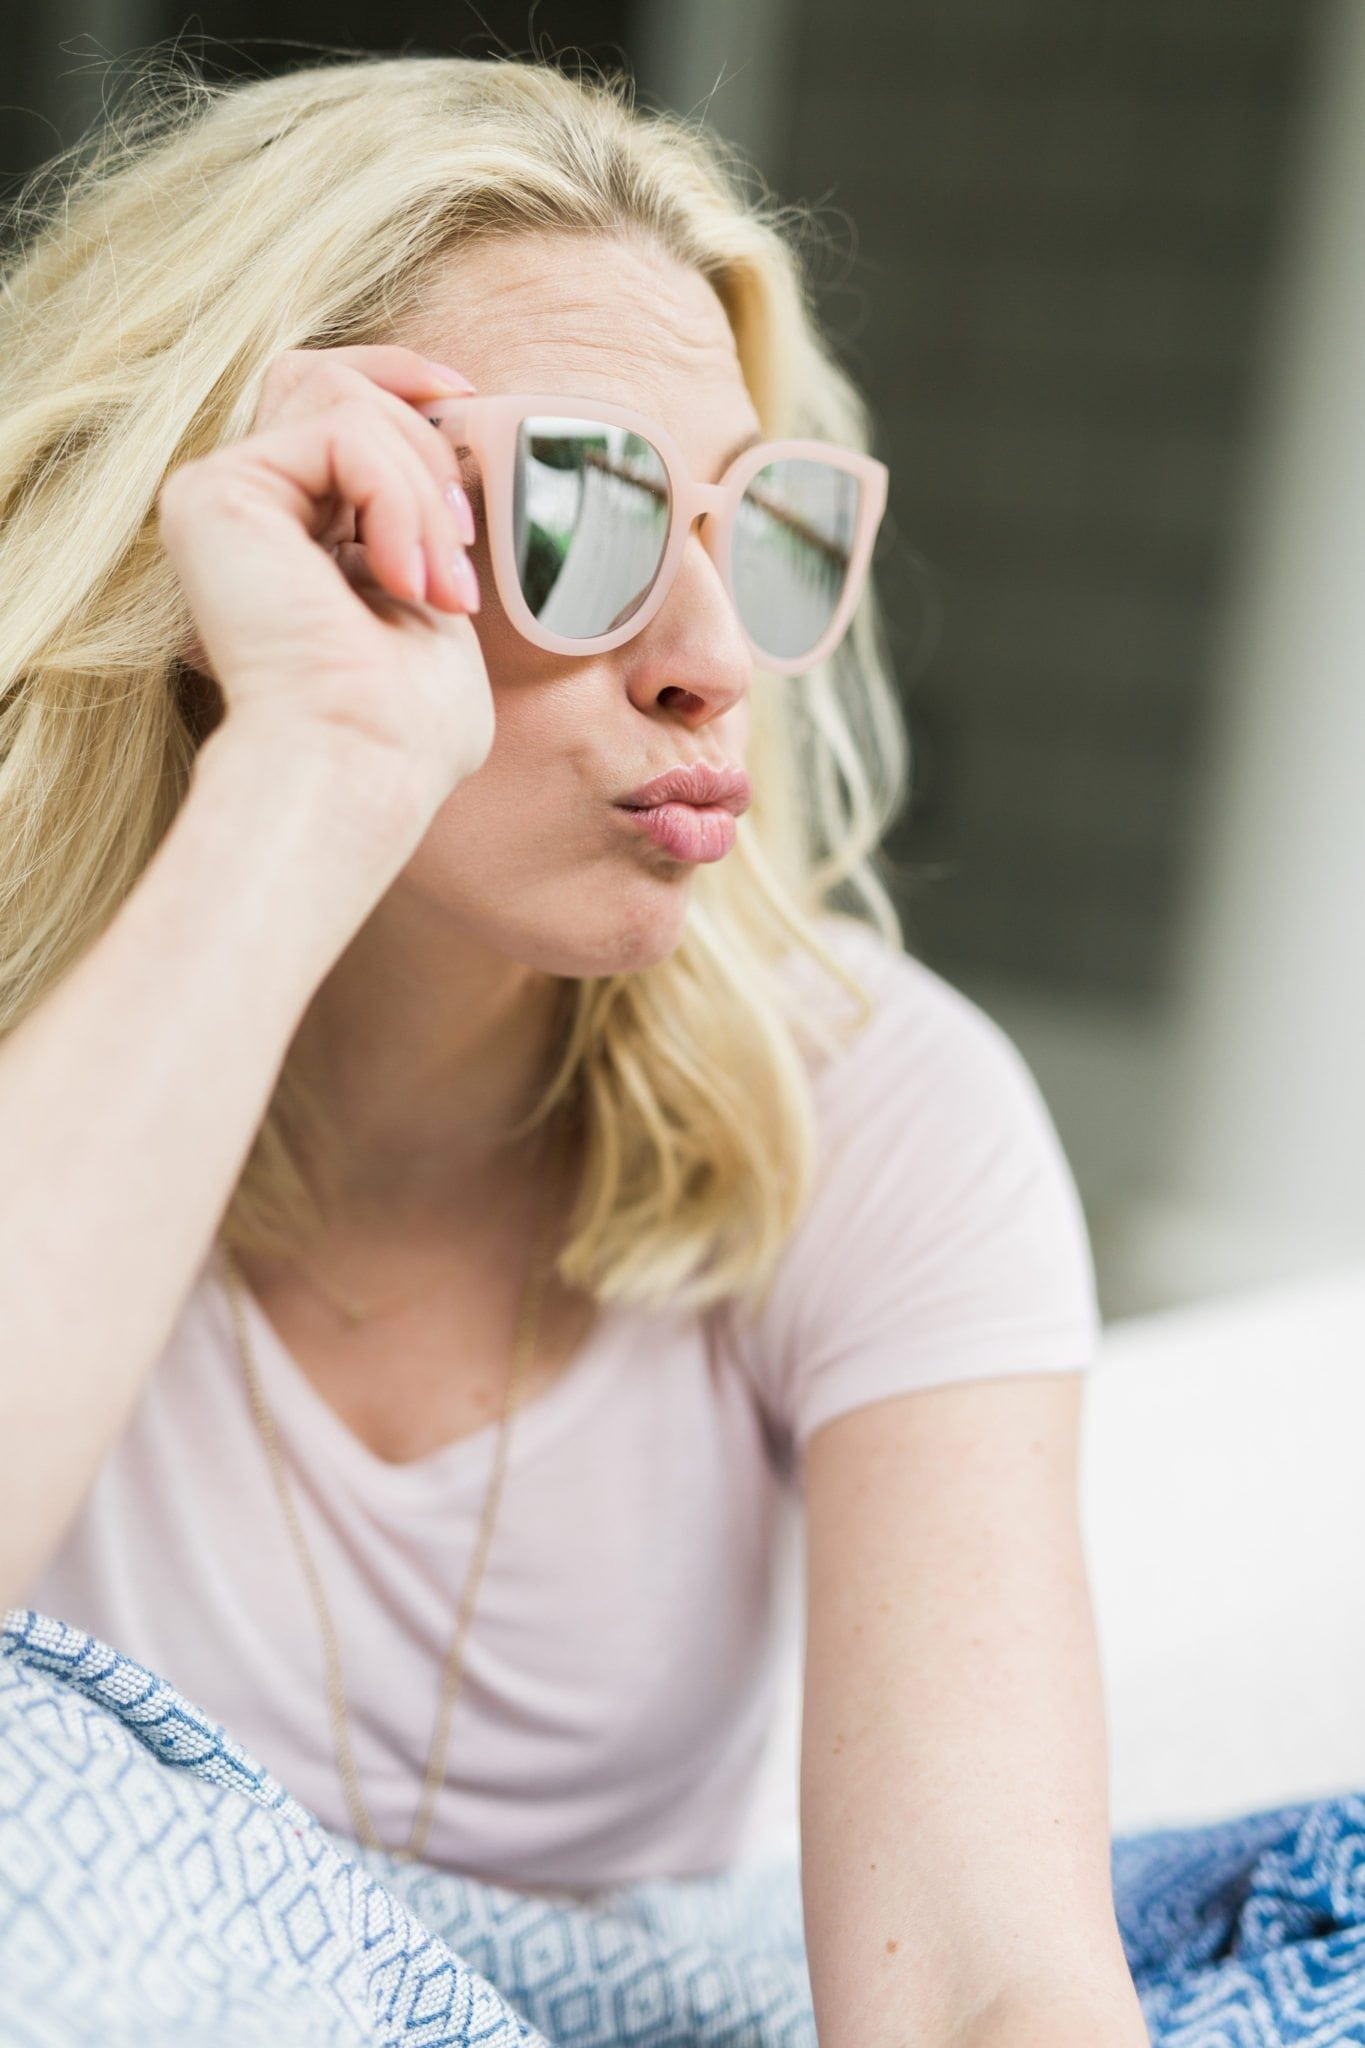 Pink mirrored sunglasses. These over sized sunglasses will hide any bad day when you don't feel like putting on make up or your eyes look tired! I love how they are mirrored!